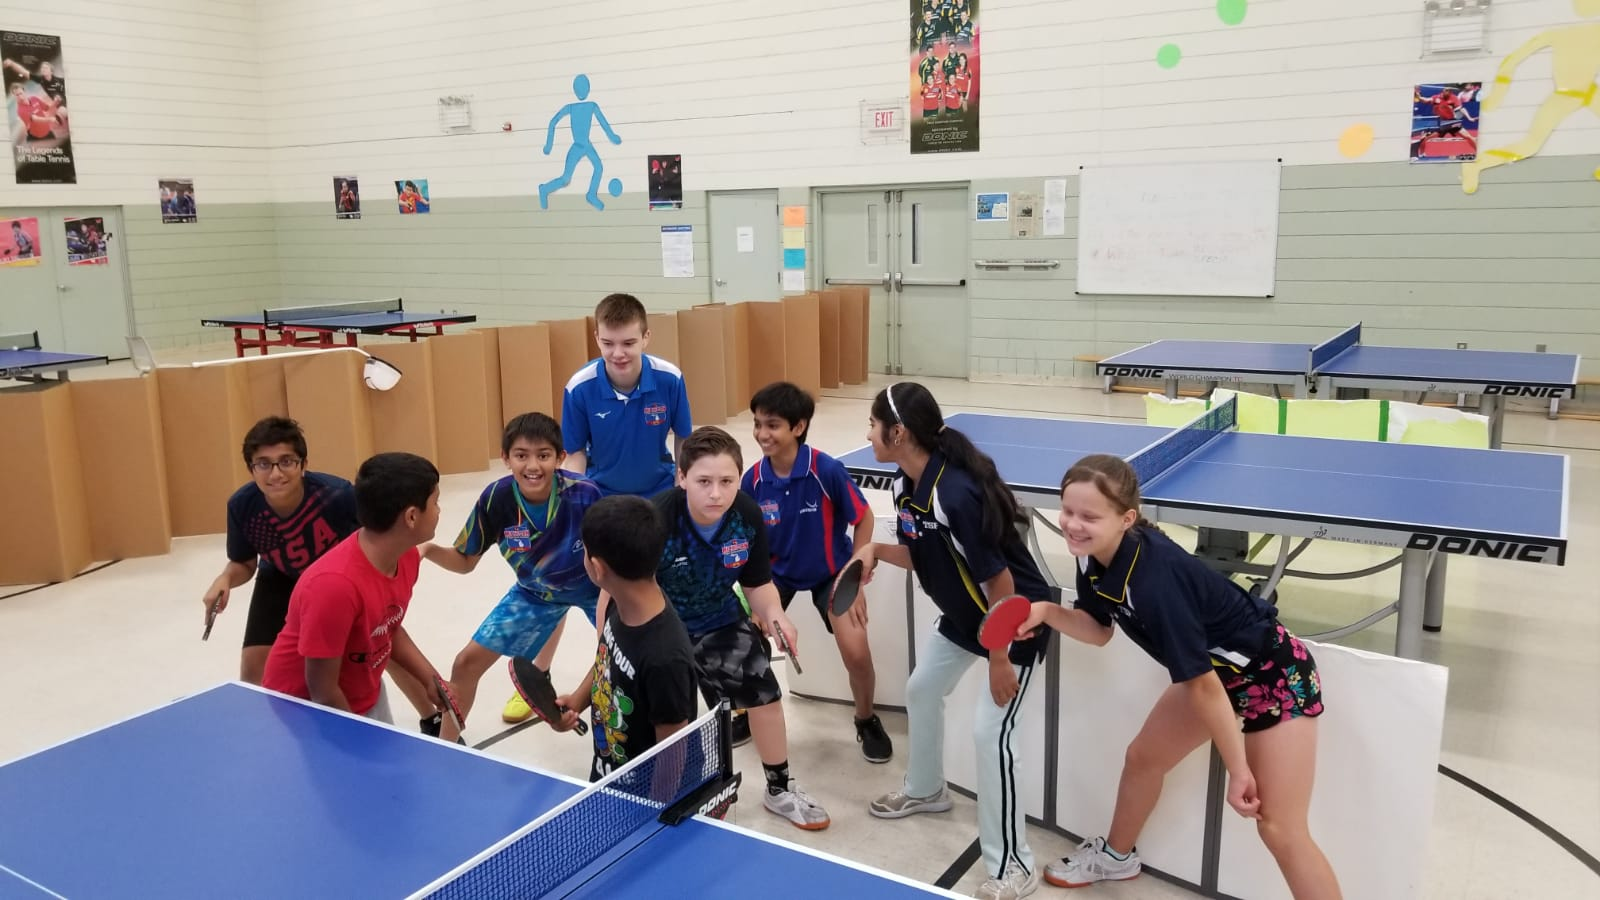 Training Michigan Table Tennis Academy